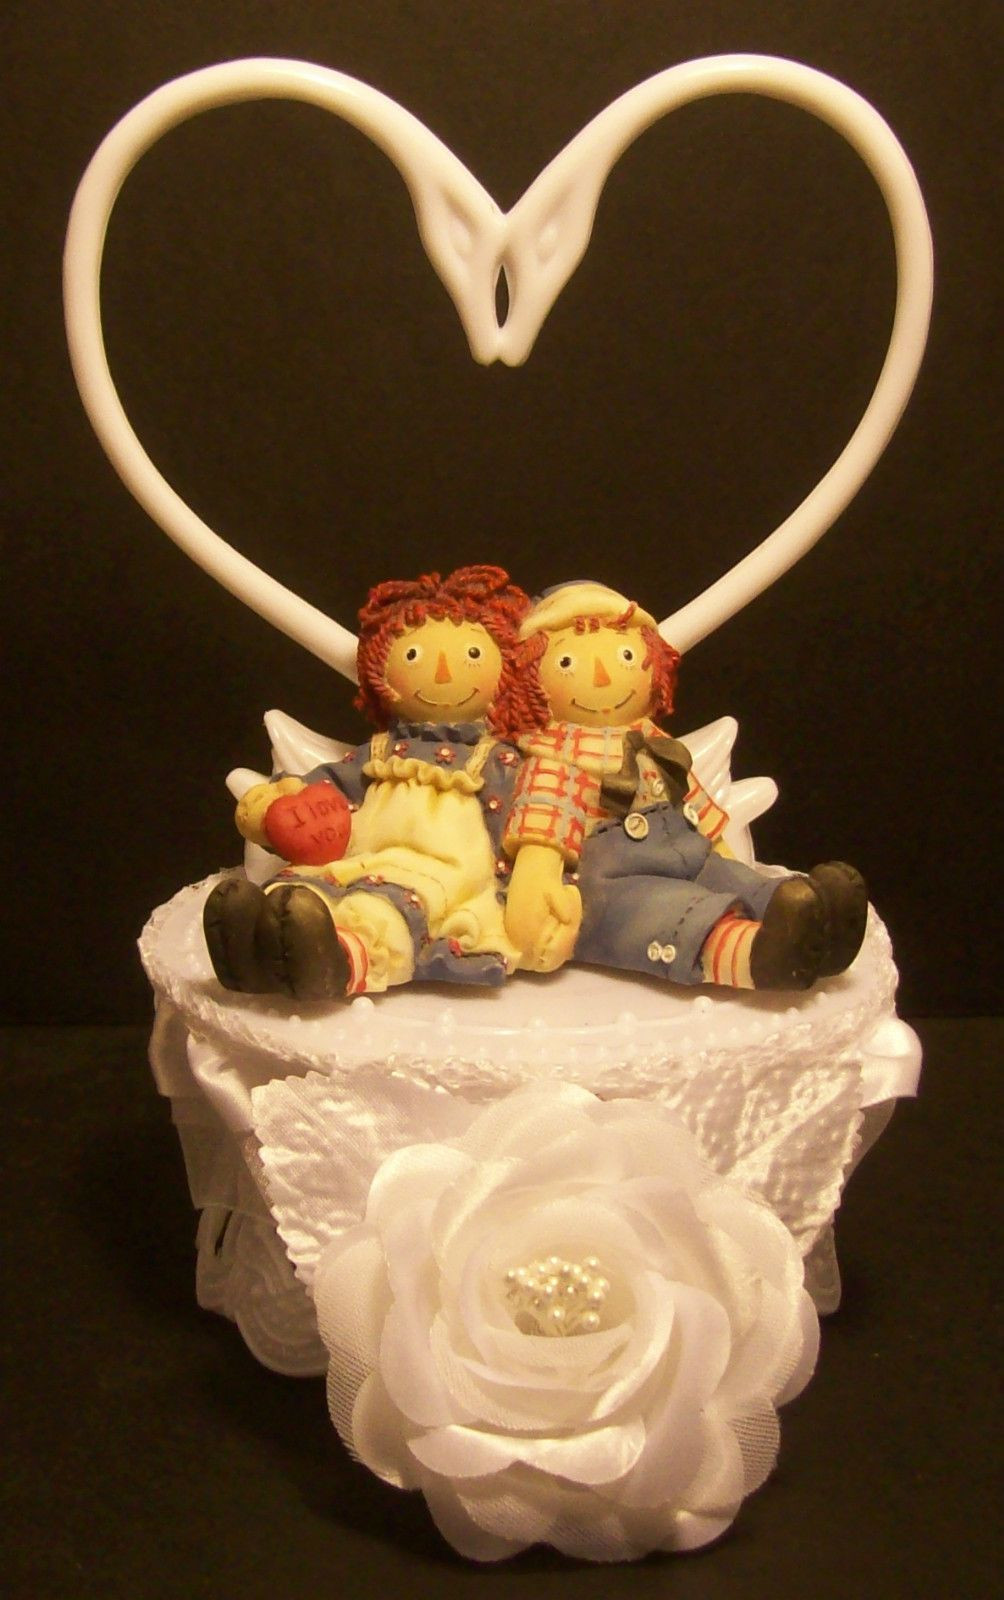 Wedding Cakes Rapid City Sd  RAGGEDY ANN & ANDY BRIDE and GROOM WEDDING CAKE TOPPER